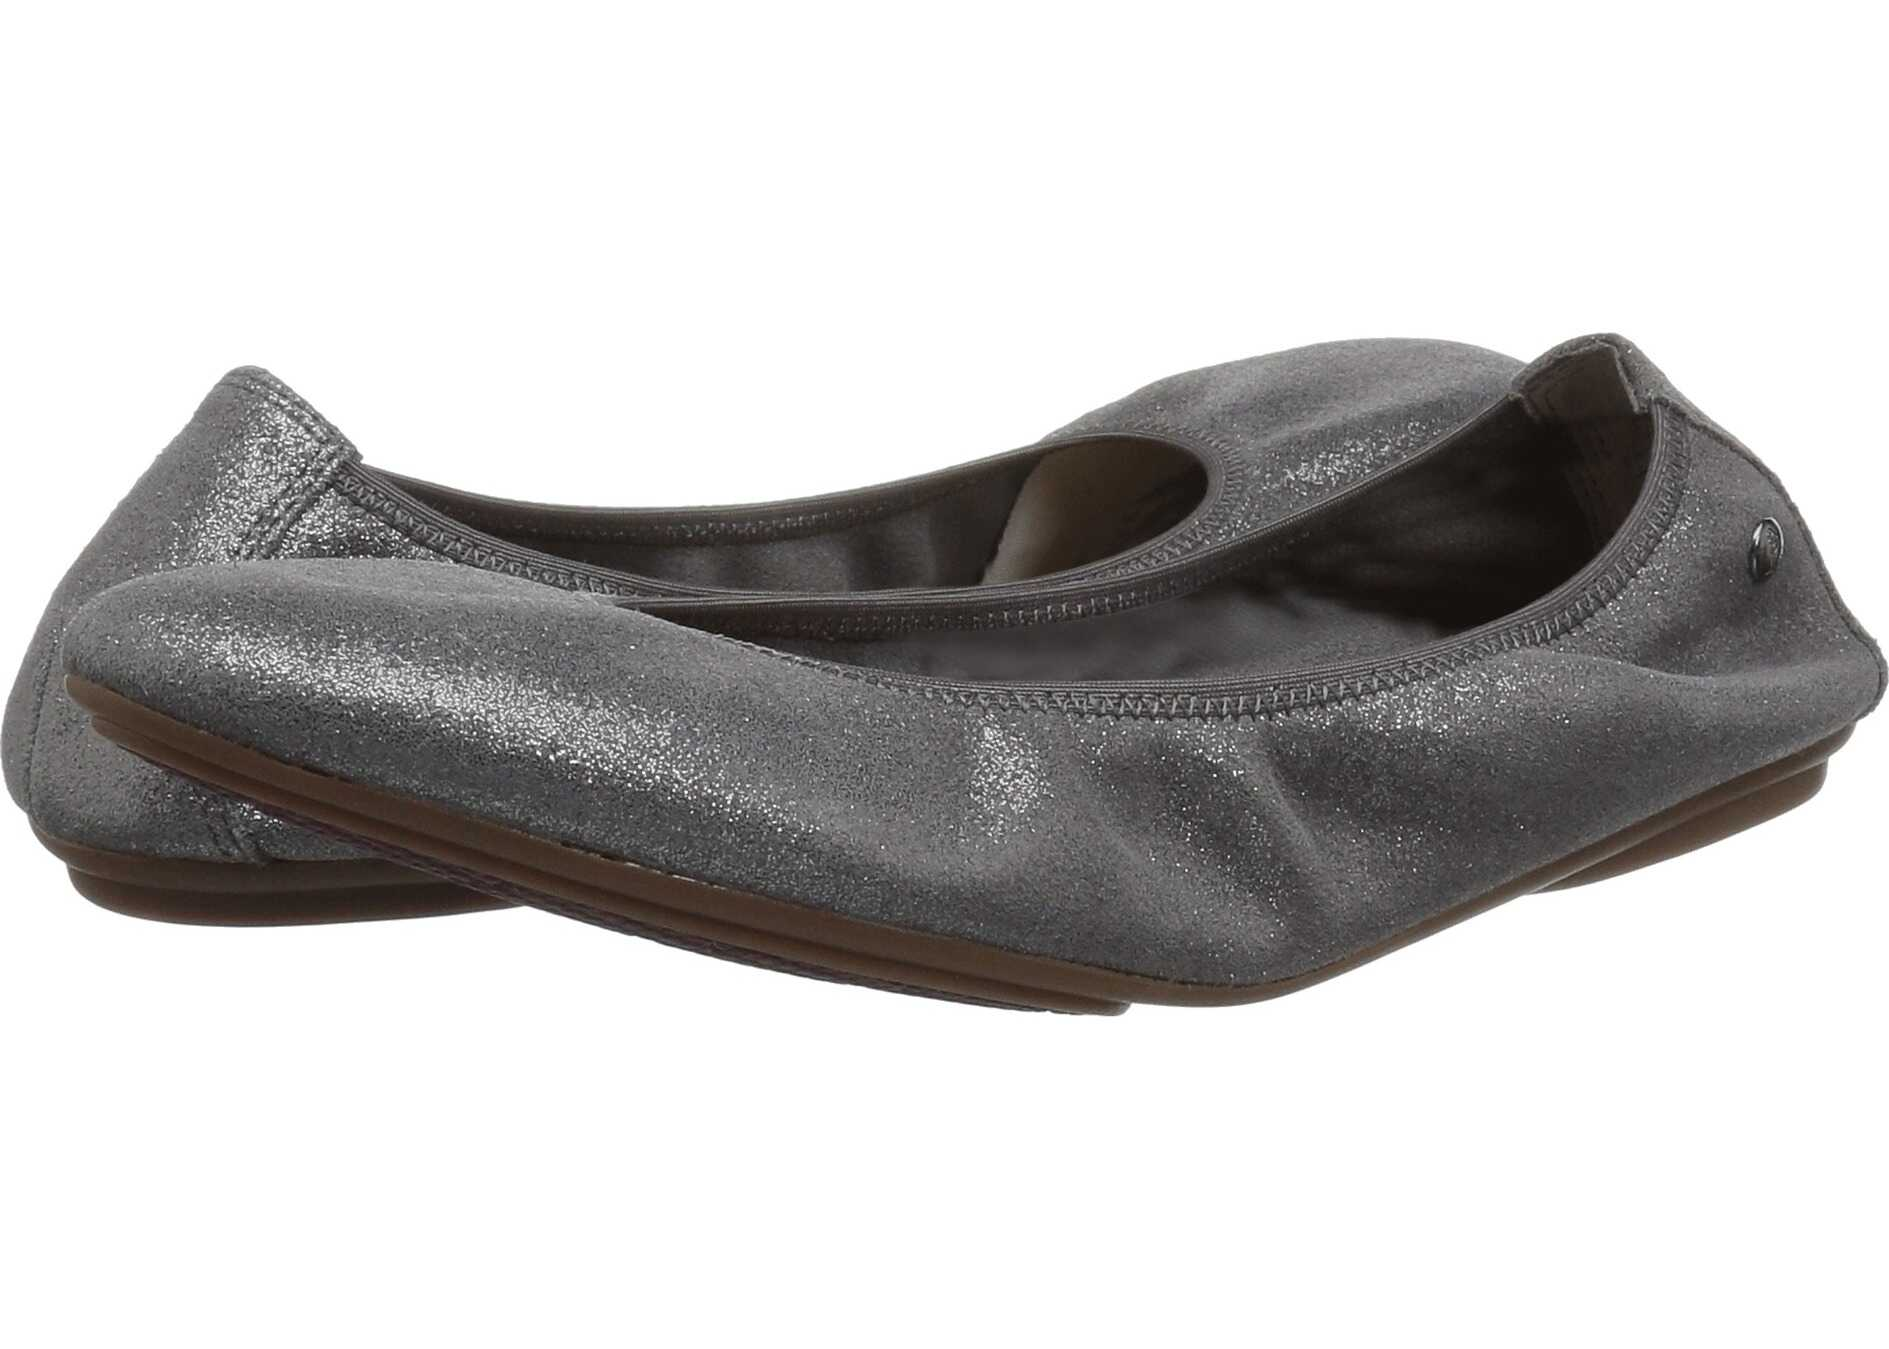 Hush Puppies Chaste Ballet Dark Grey Metallic Suede